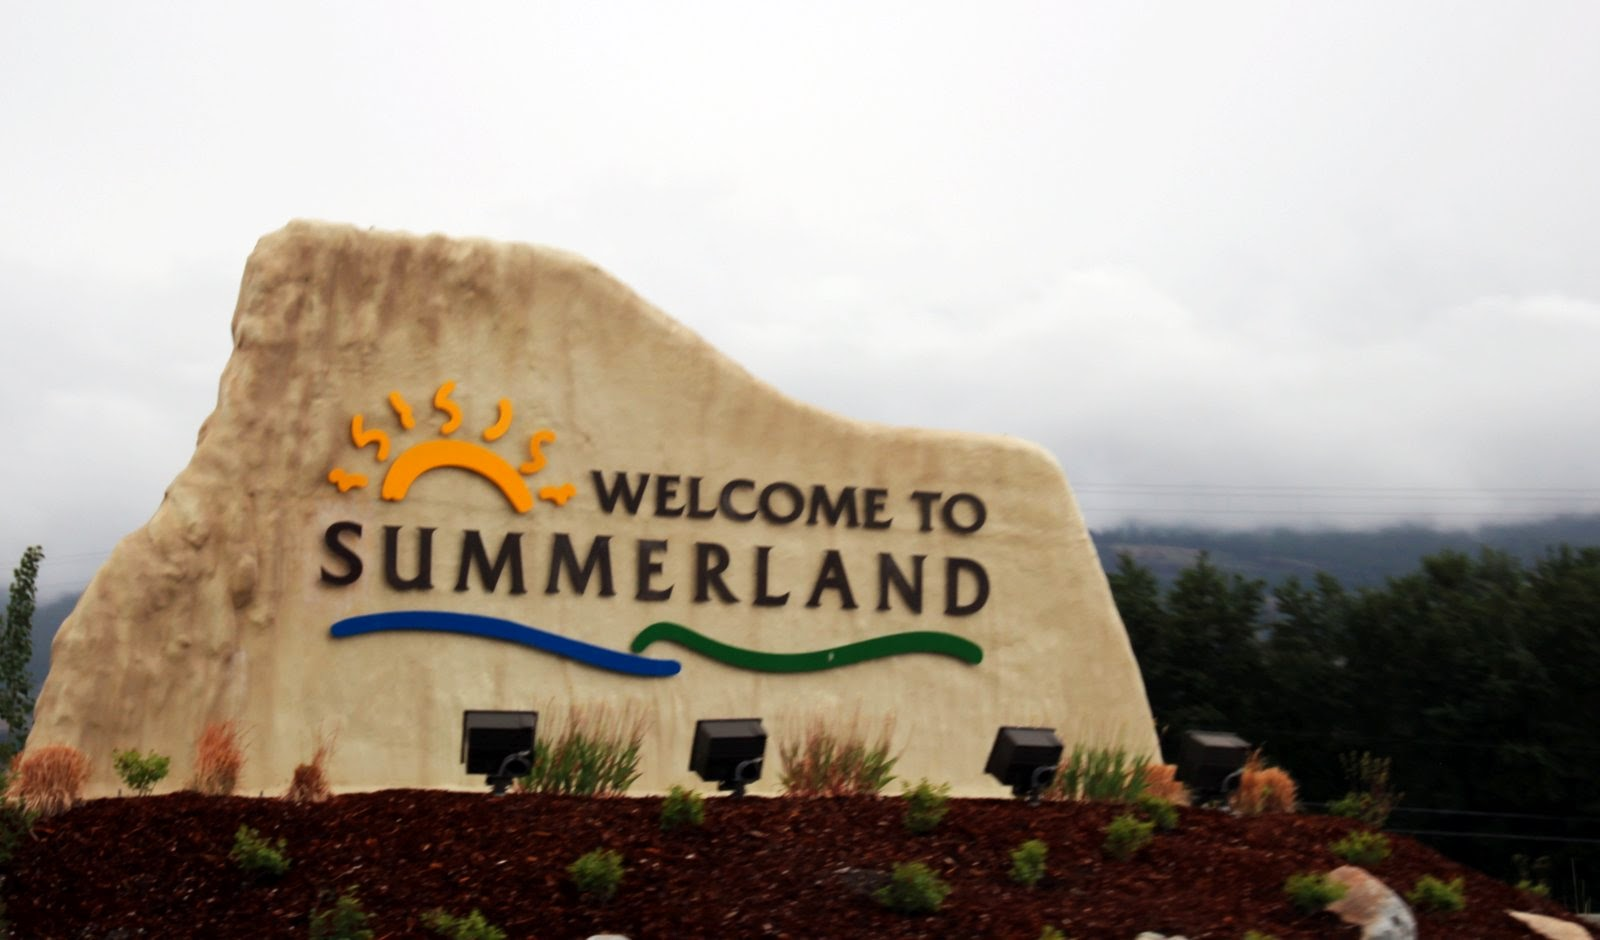 OUR TRAVEL JOURNAL SUMMERLAND BC